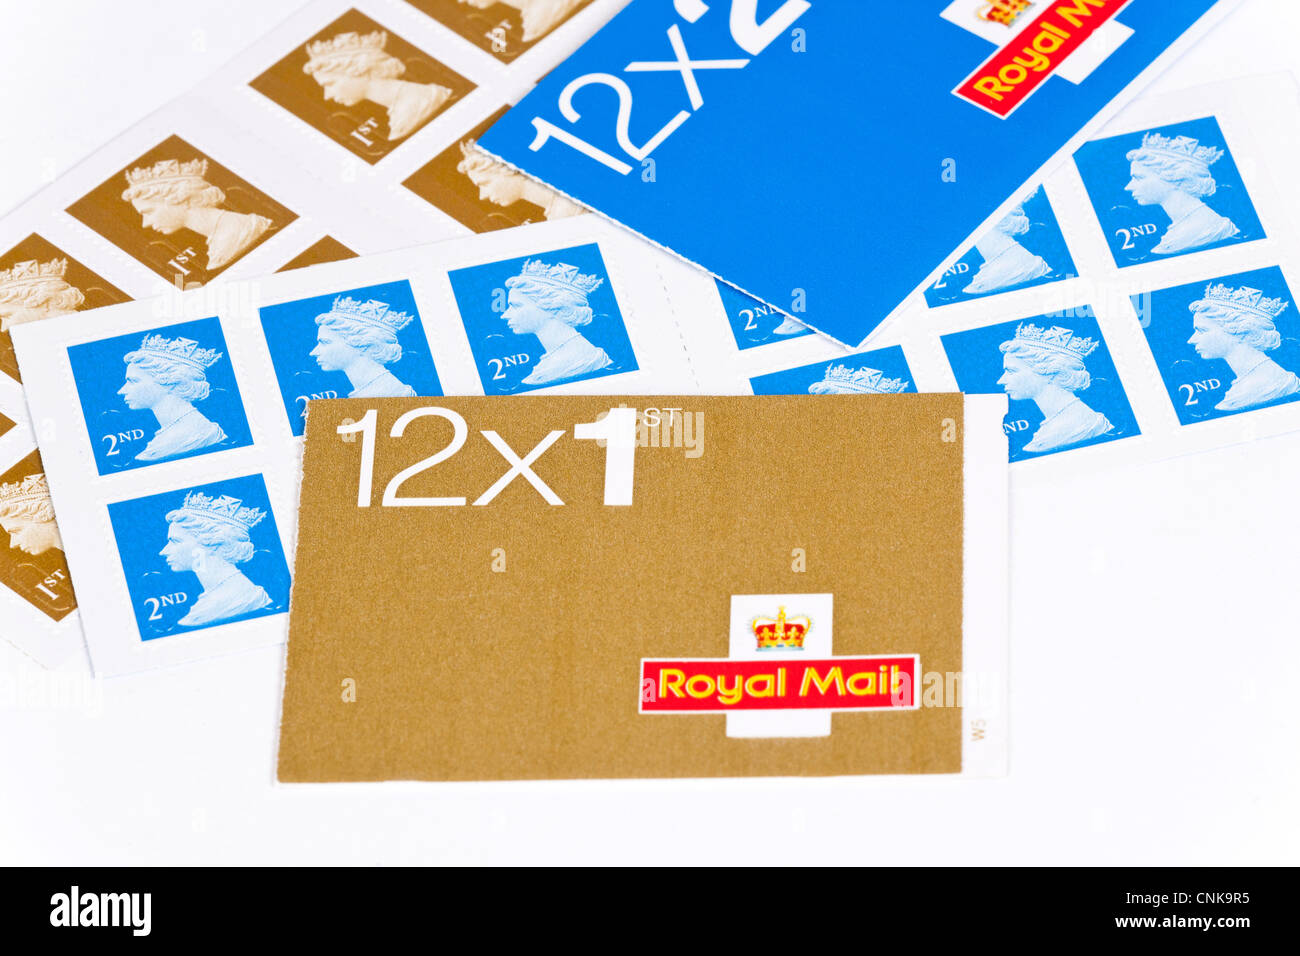 Royal Mail postage stamps in first and second class Stock Photo